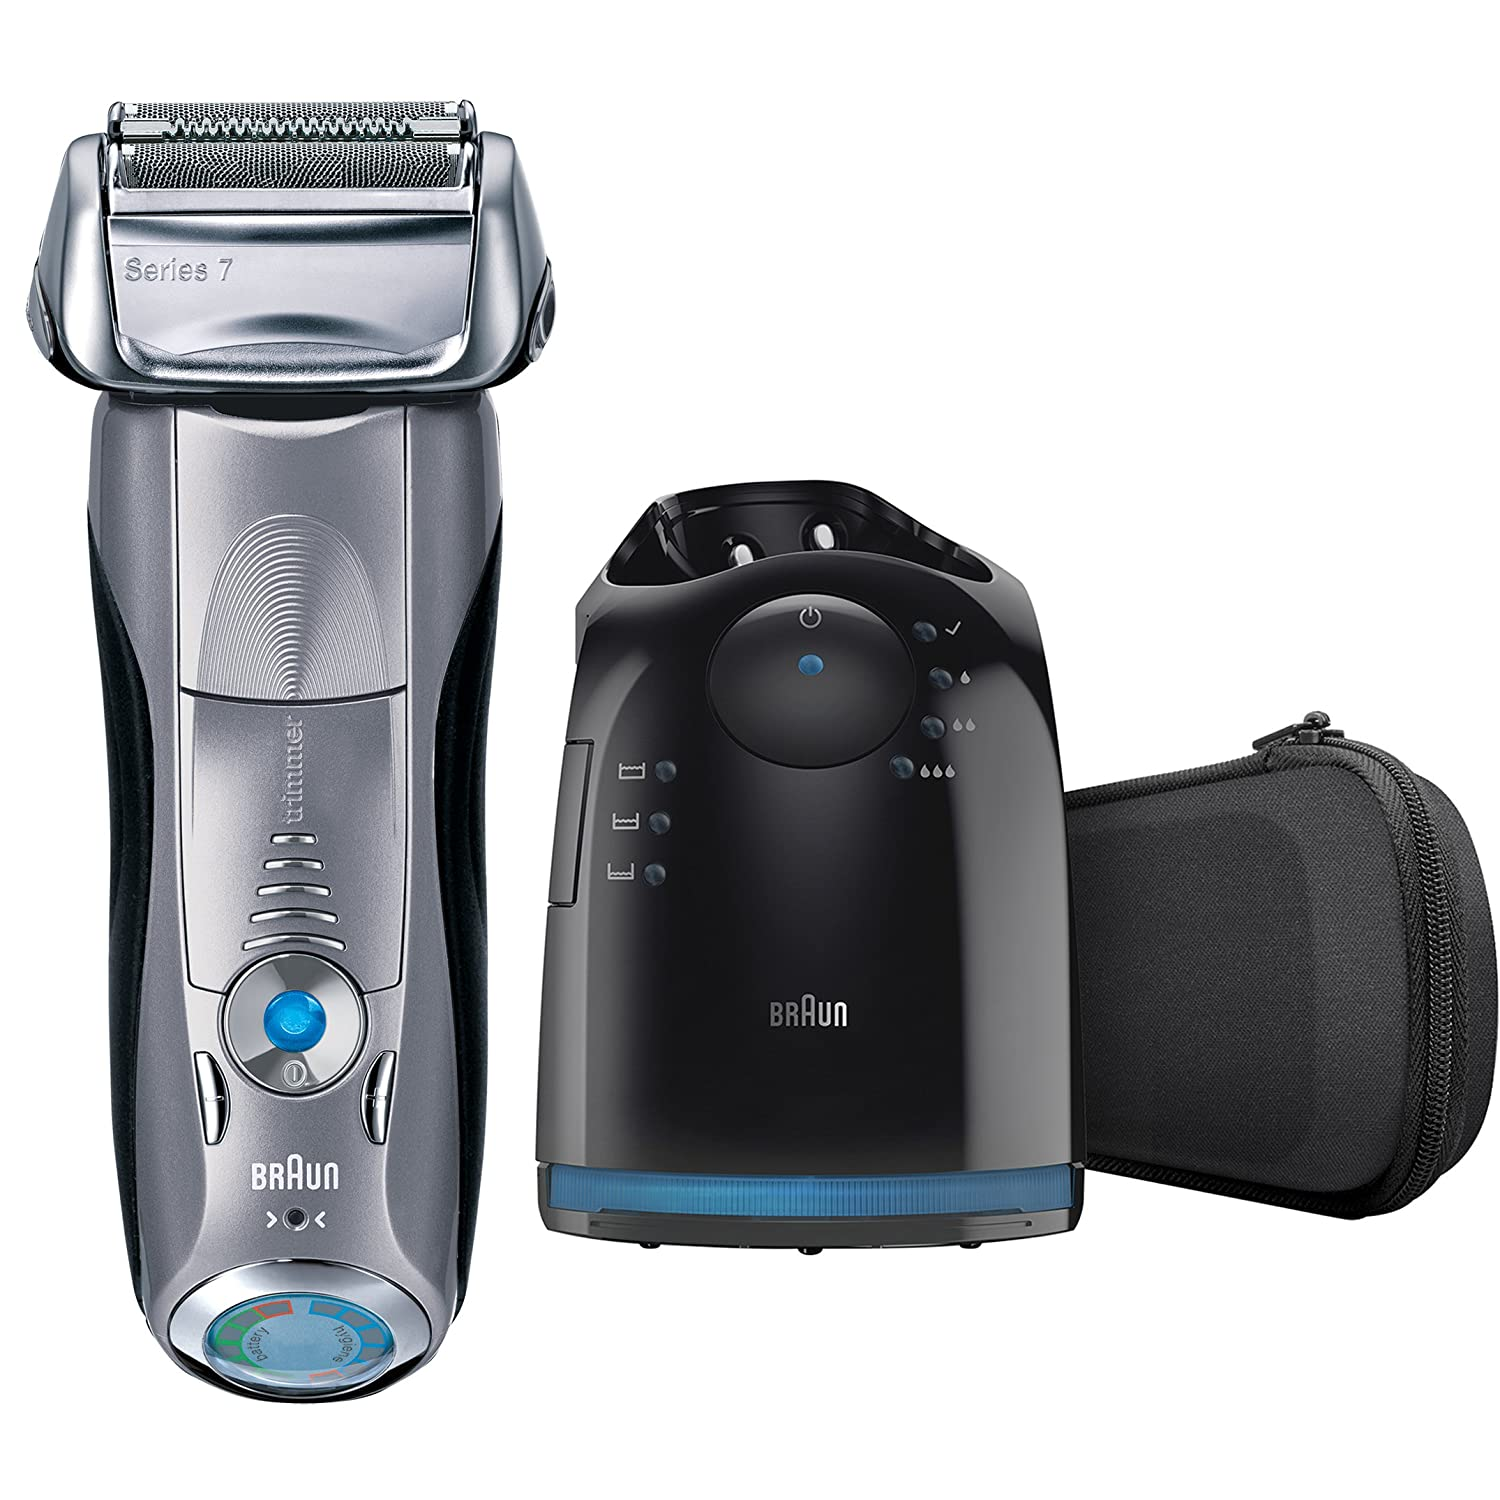 Braun Series 7 790cc-4 Men s Electric Foil Shaver with Clean and Charge  Station Rechargeable and Cordless Razor  Amazon.co.uk  Health   Personal  Care 746c624a73